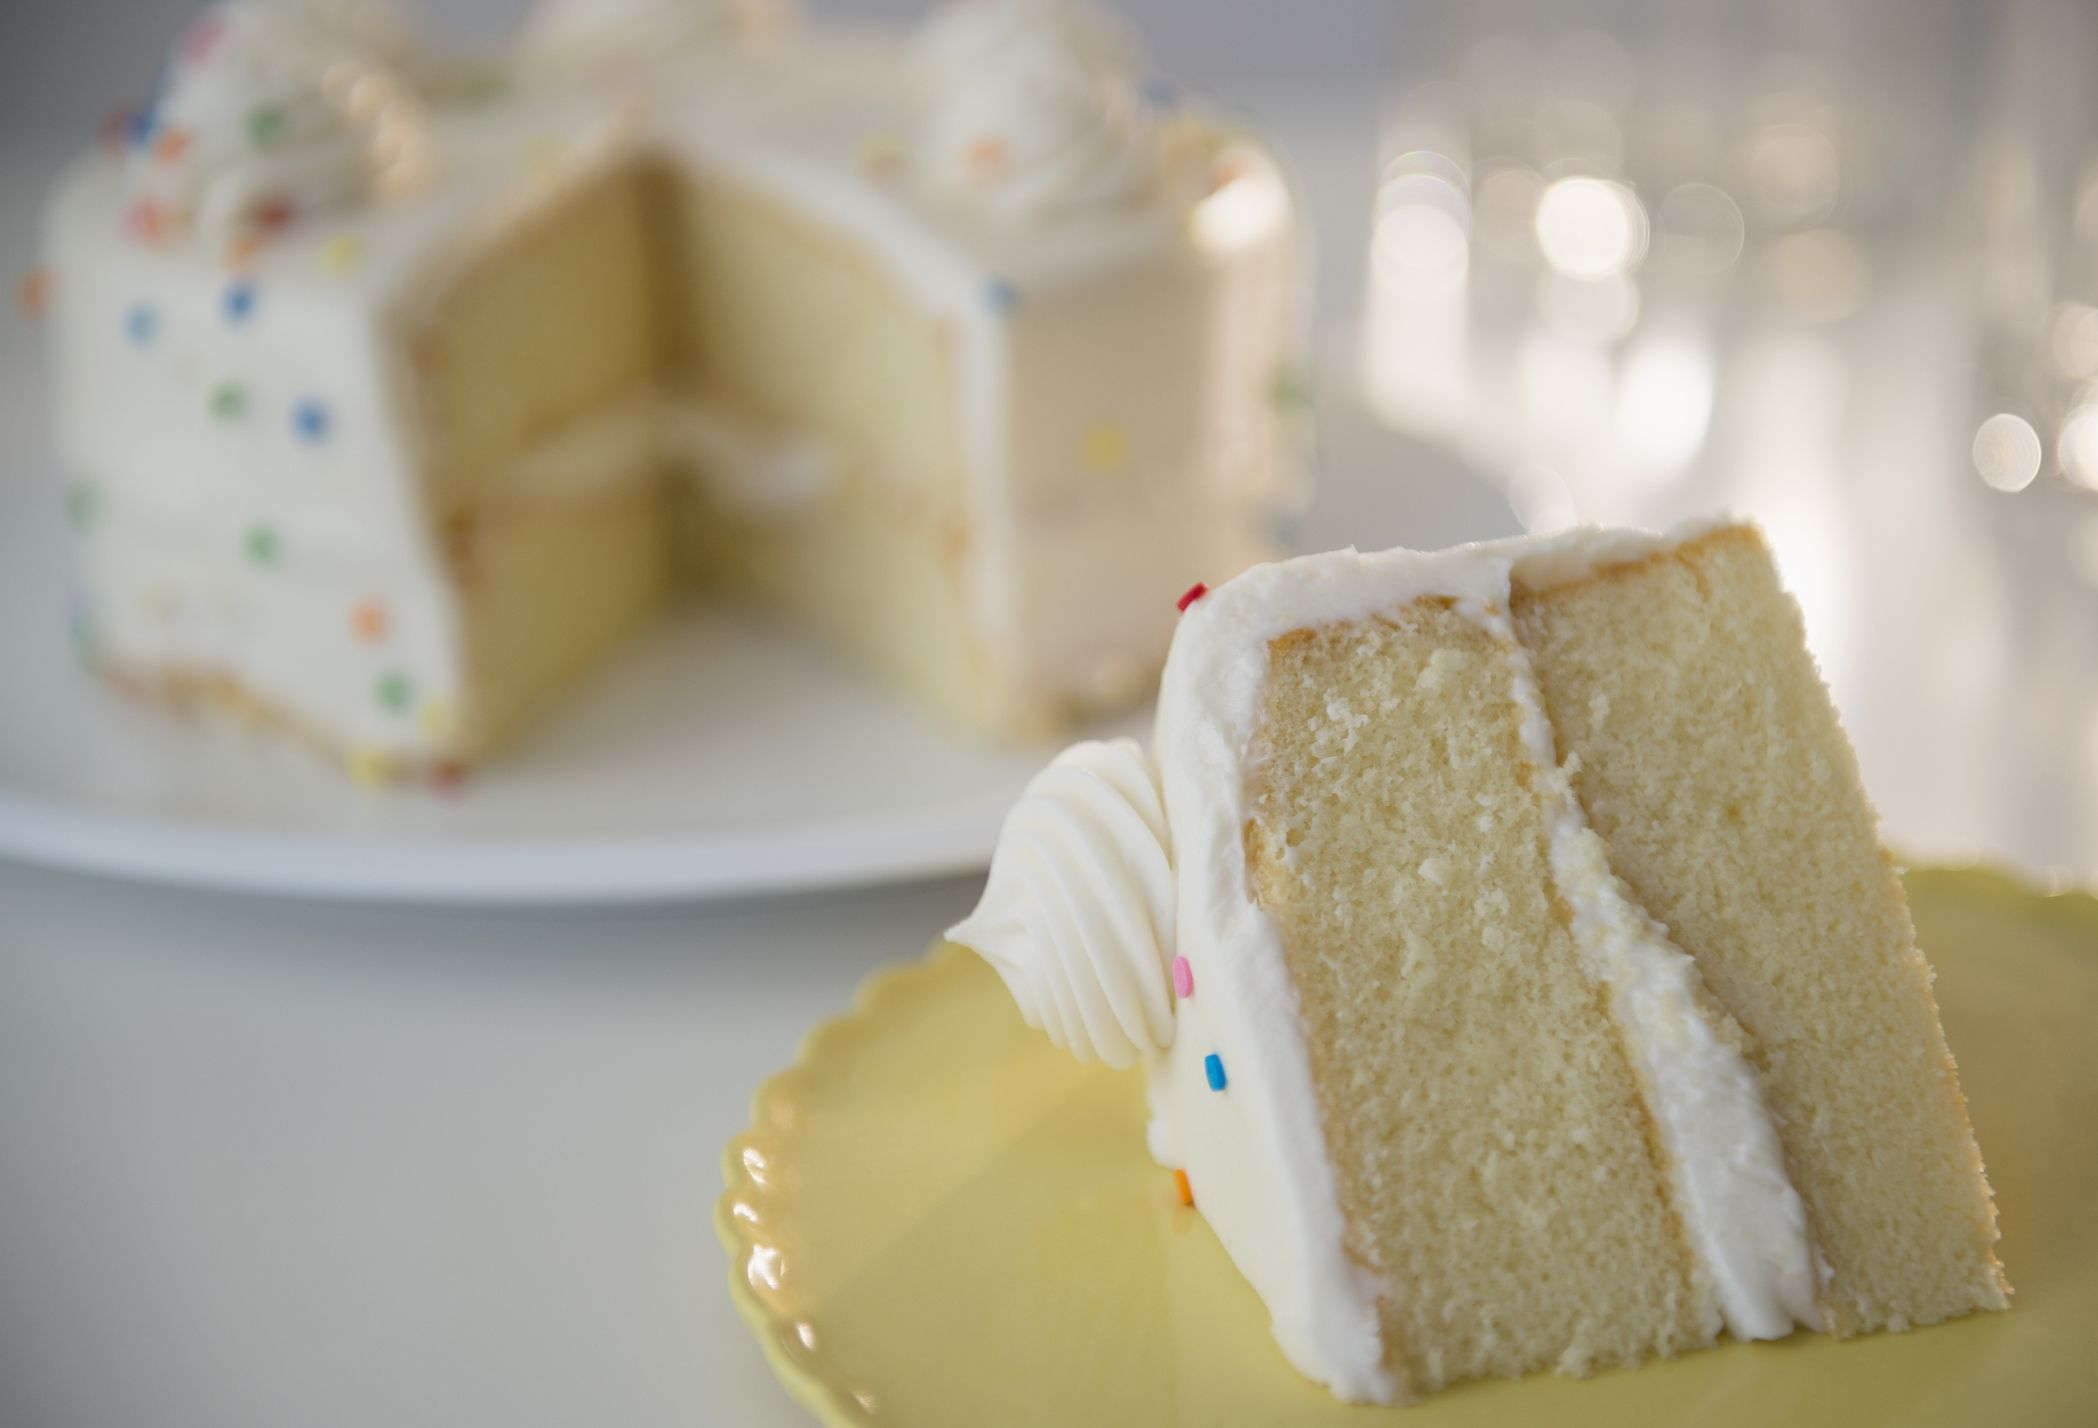 A slice of angel food cake with funfetti icing.